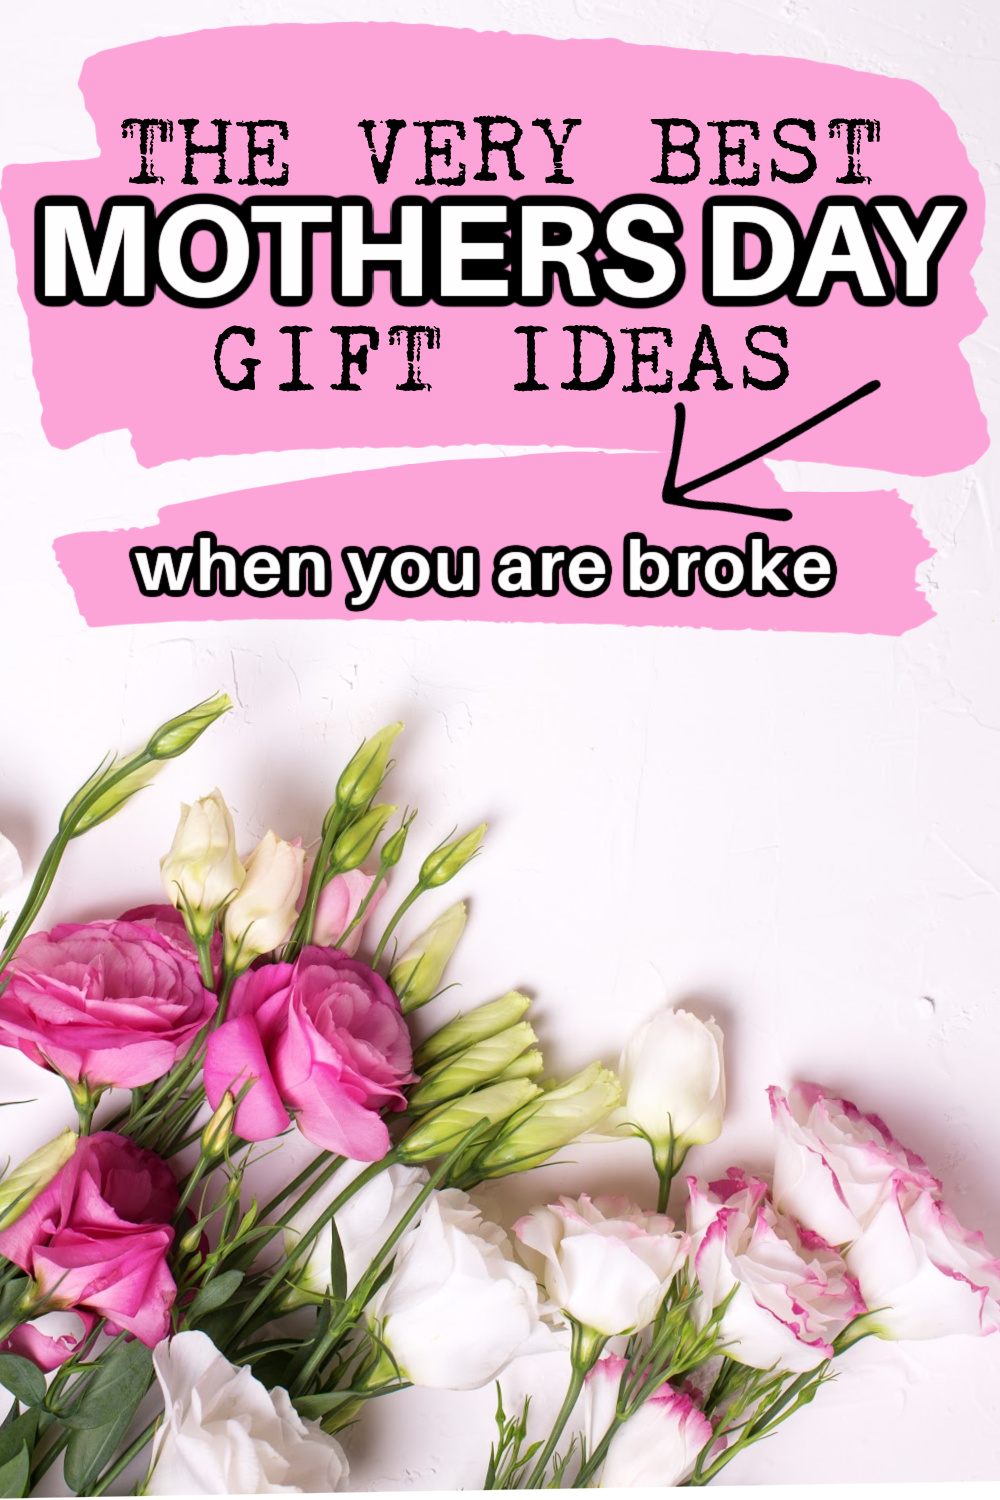 mothers day gifts that are free - cheap gifts for mom on mothers day